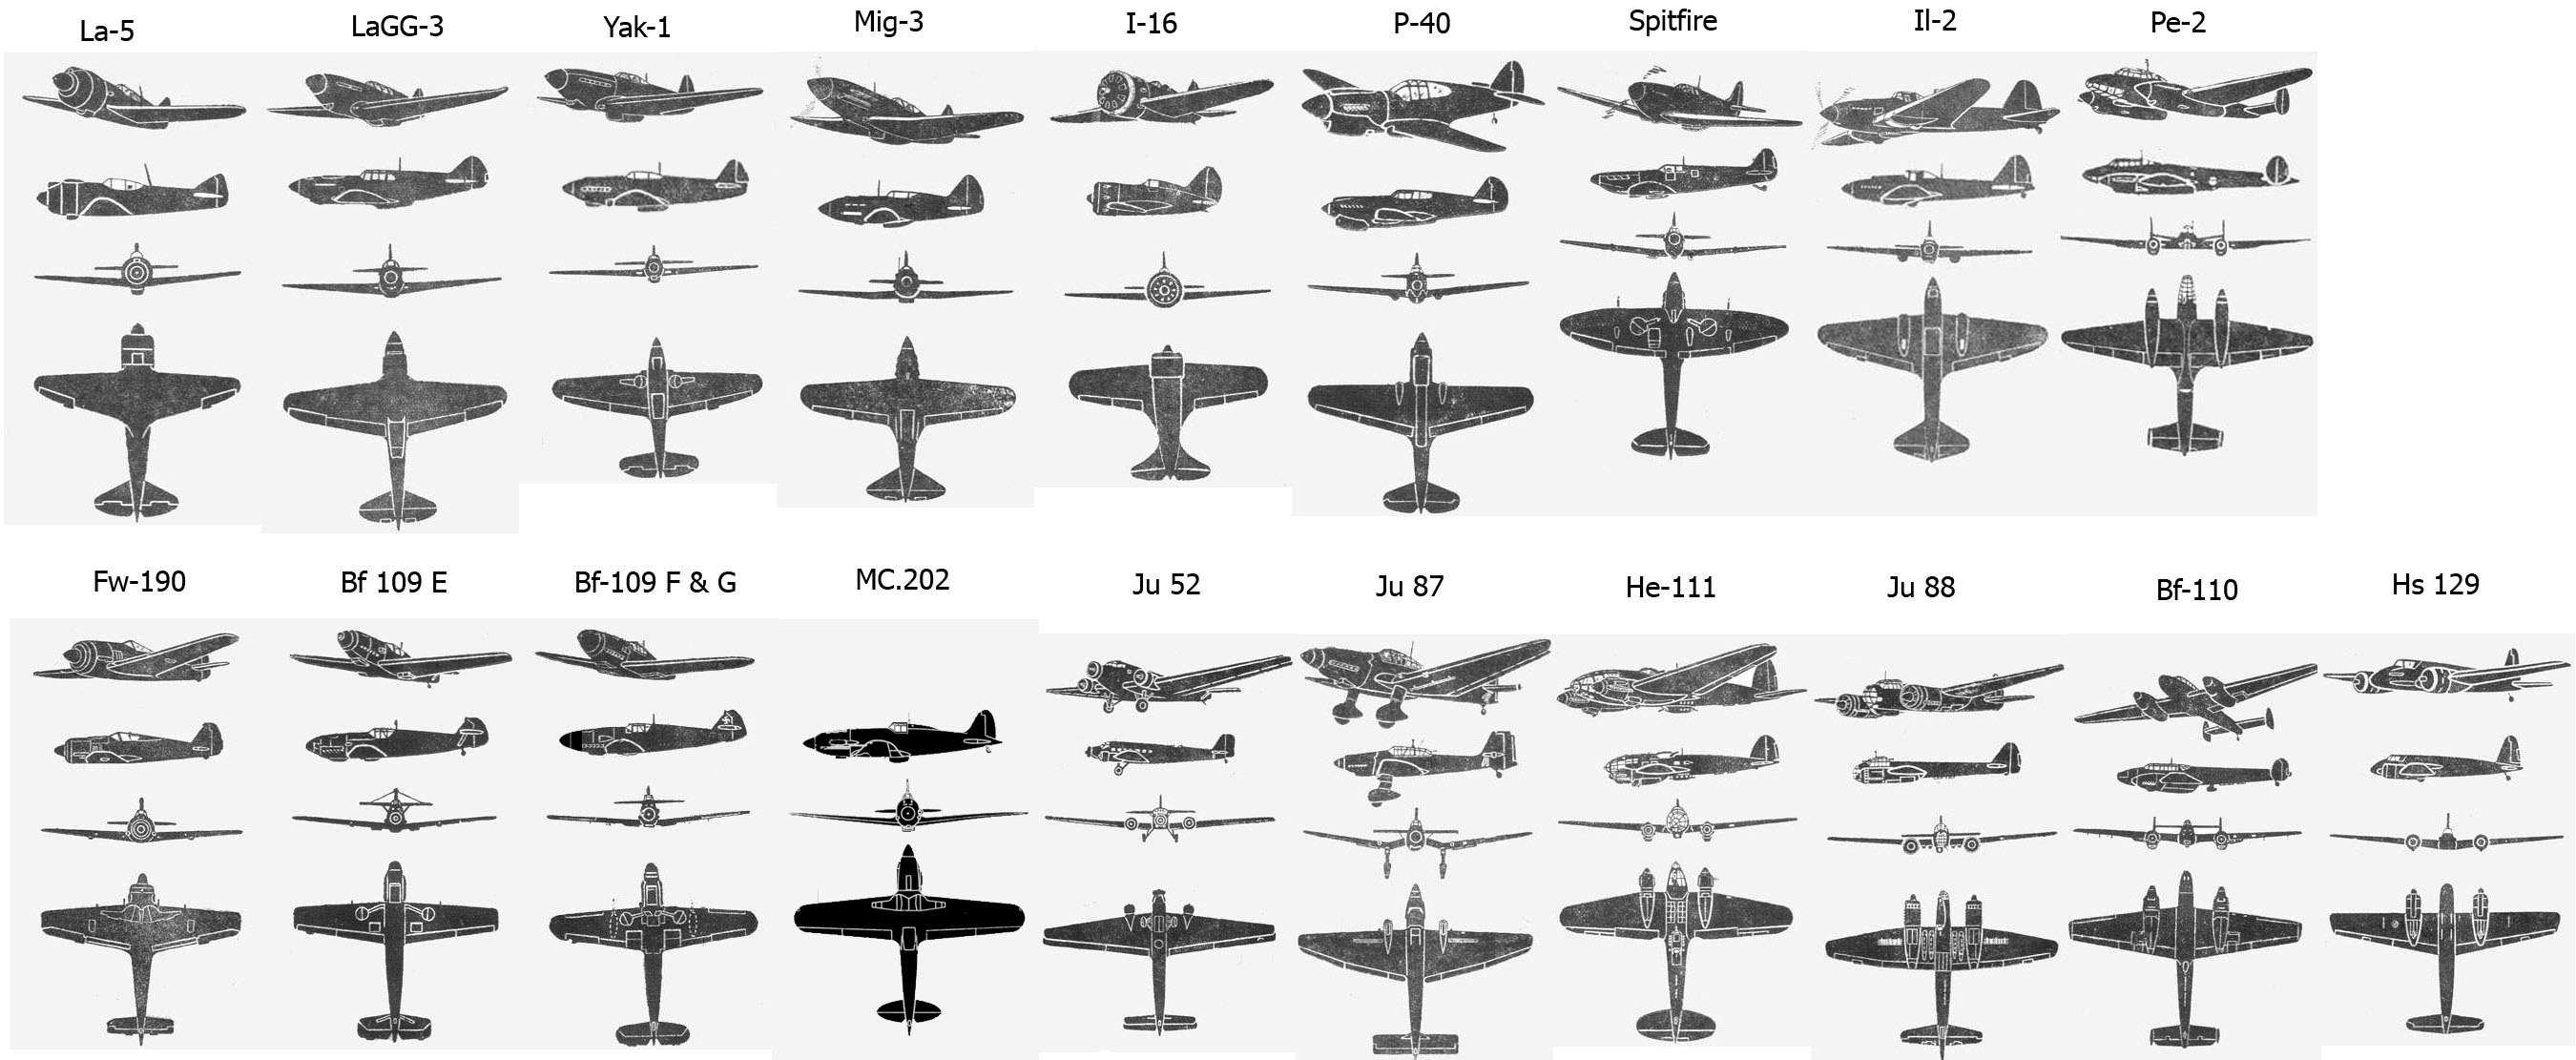 Identification/recognition aircrafts of BoS/BoM/BoK - Manuals, Tutorials,  Guides and Tips - IL-2 Sturmovik Forum